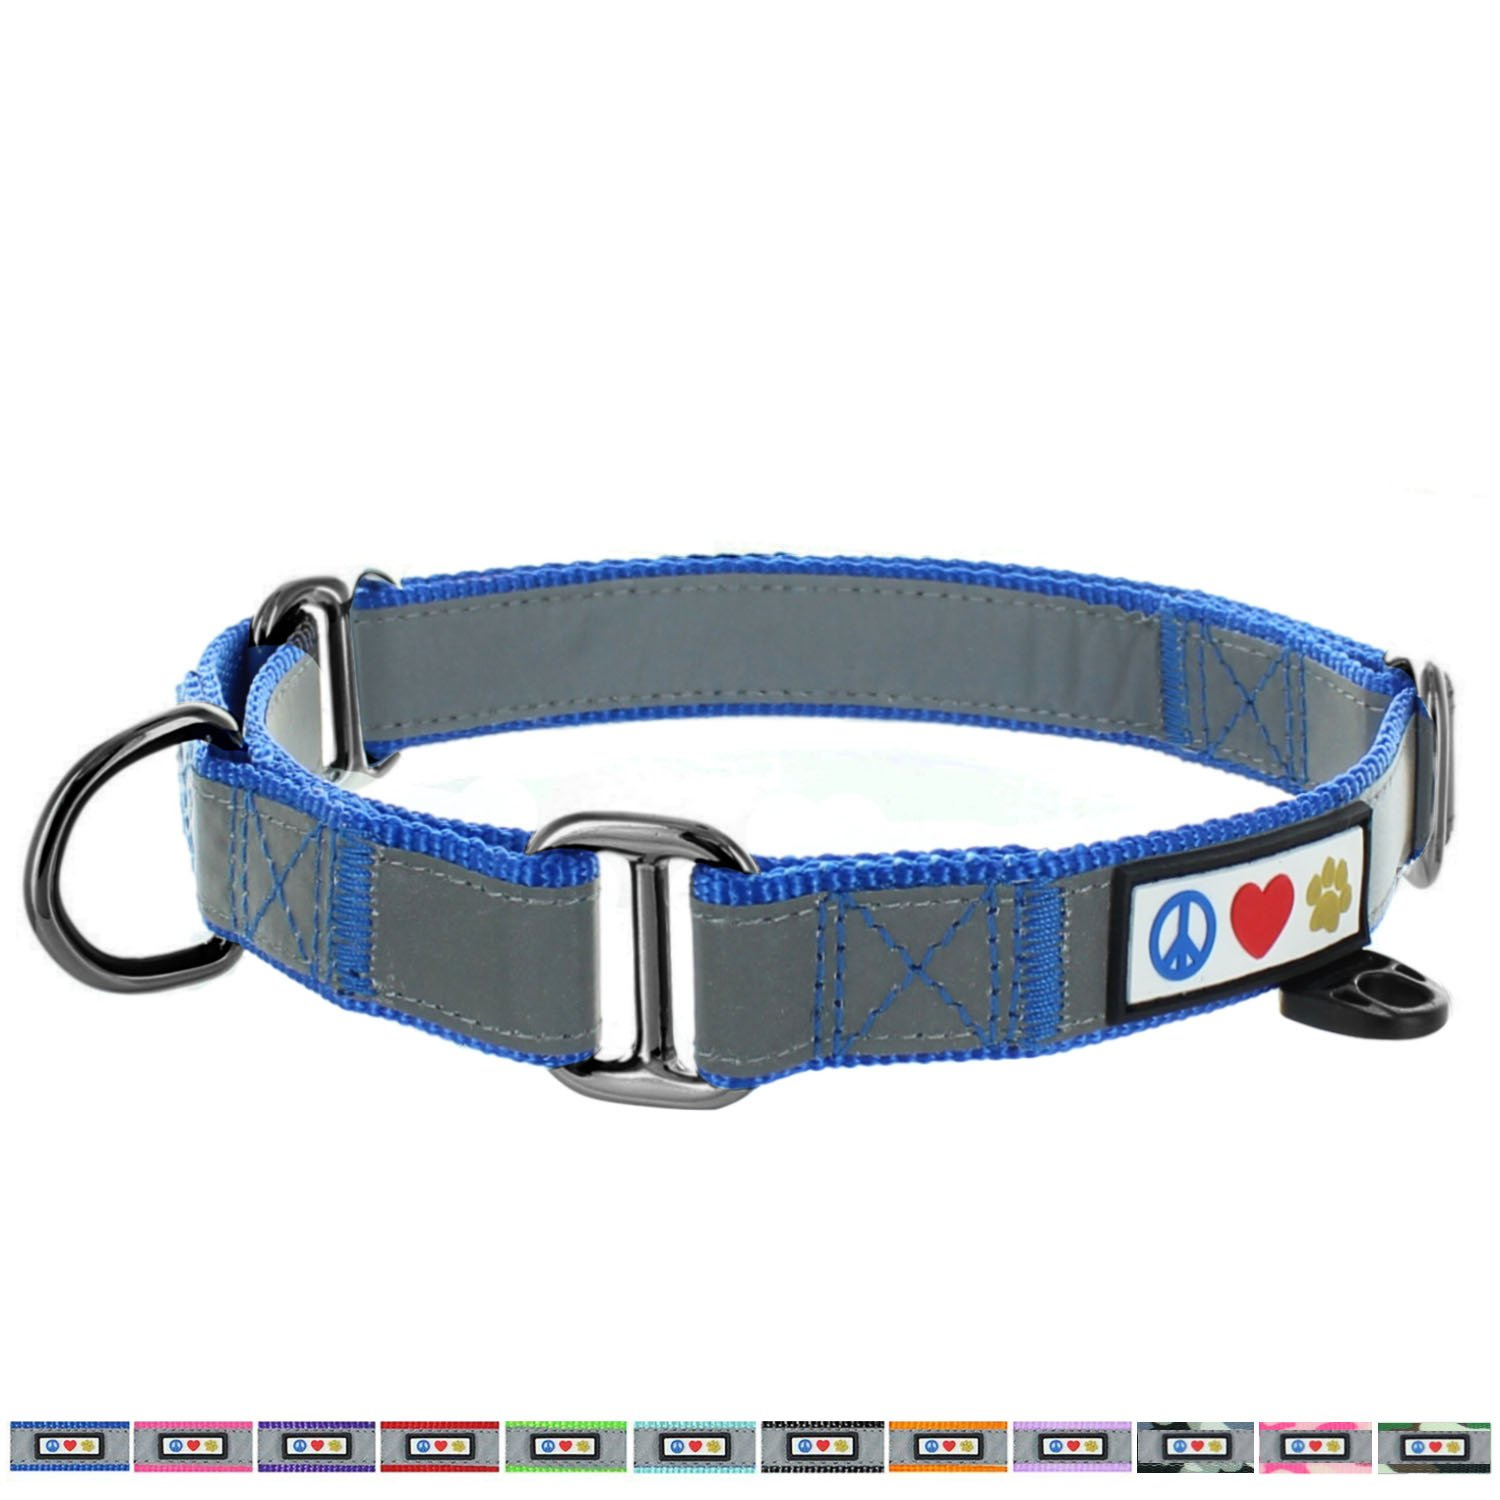 Pawtitas Pet Reflective Adjustable Soft Dog Collar Martingale Training Blue Medium 3/4 inch